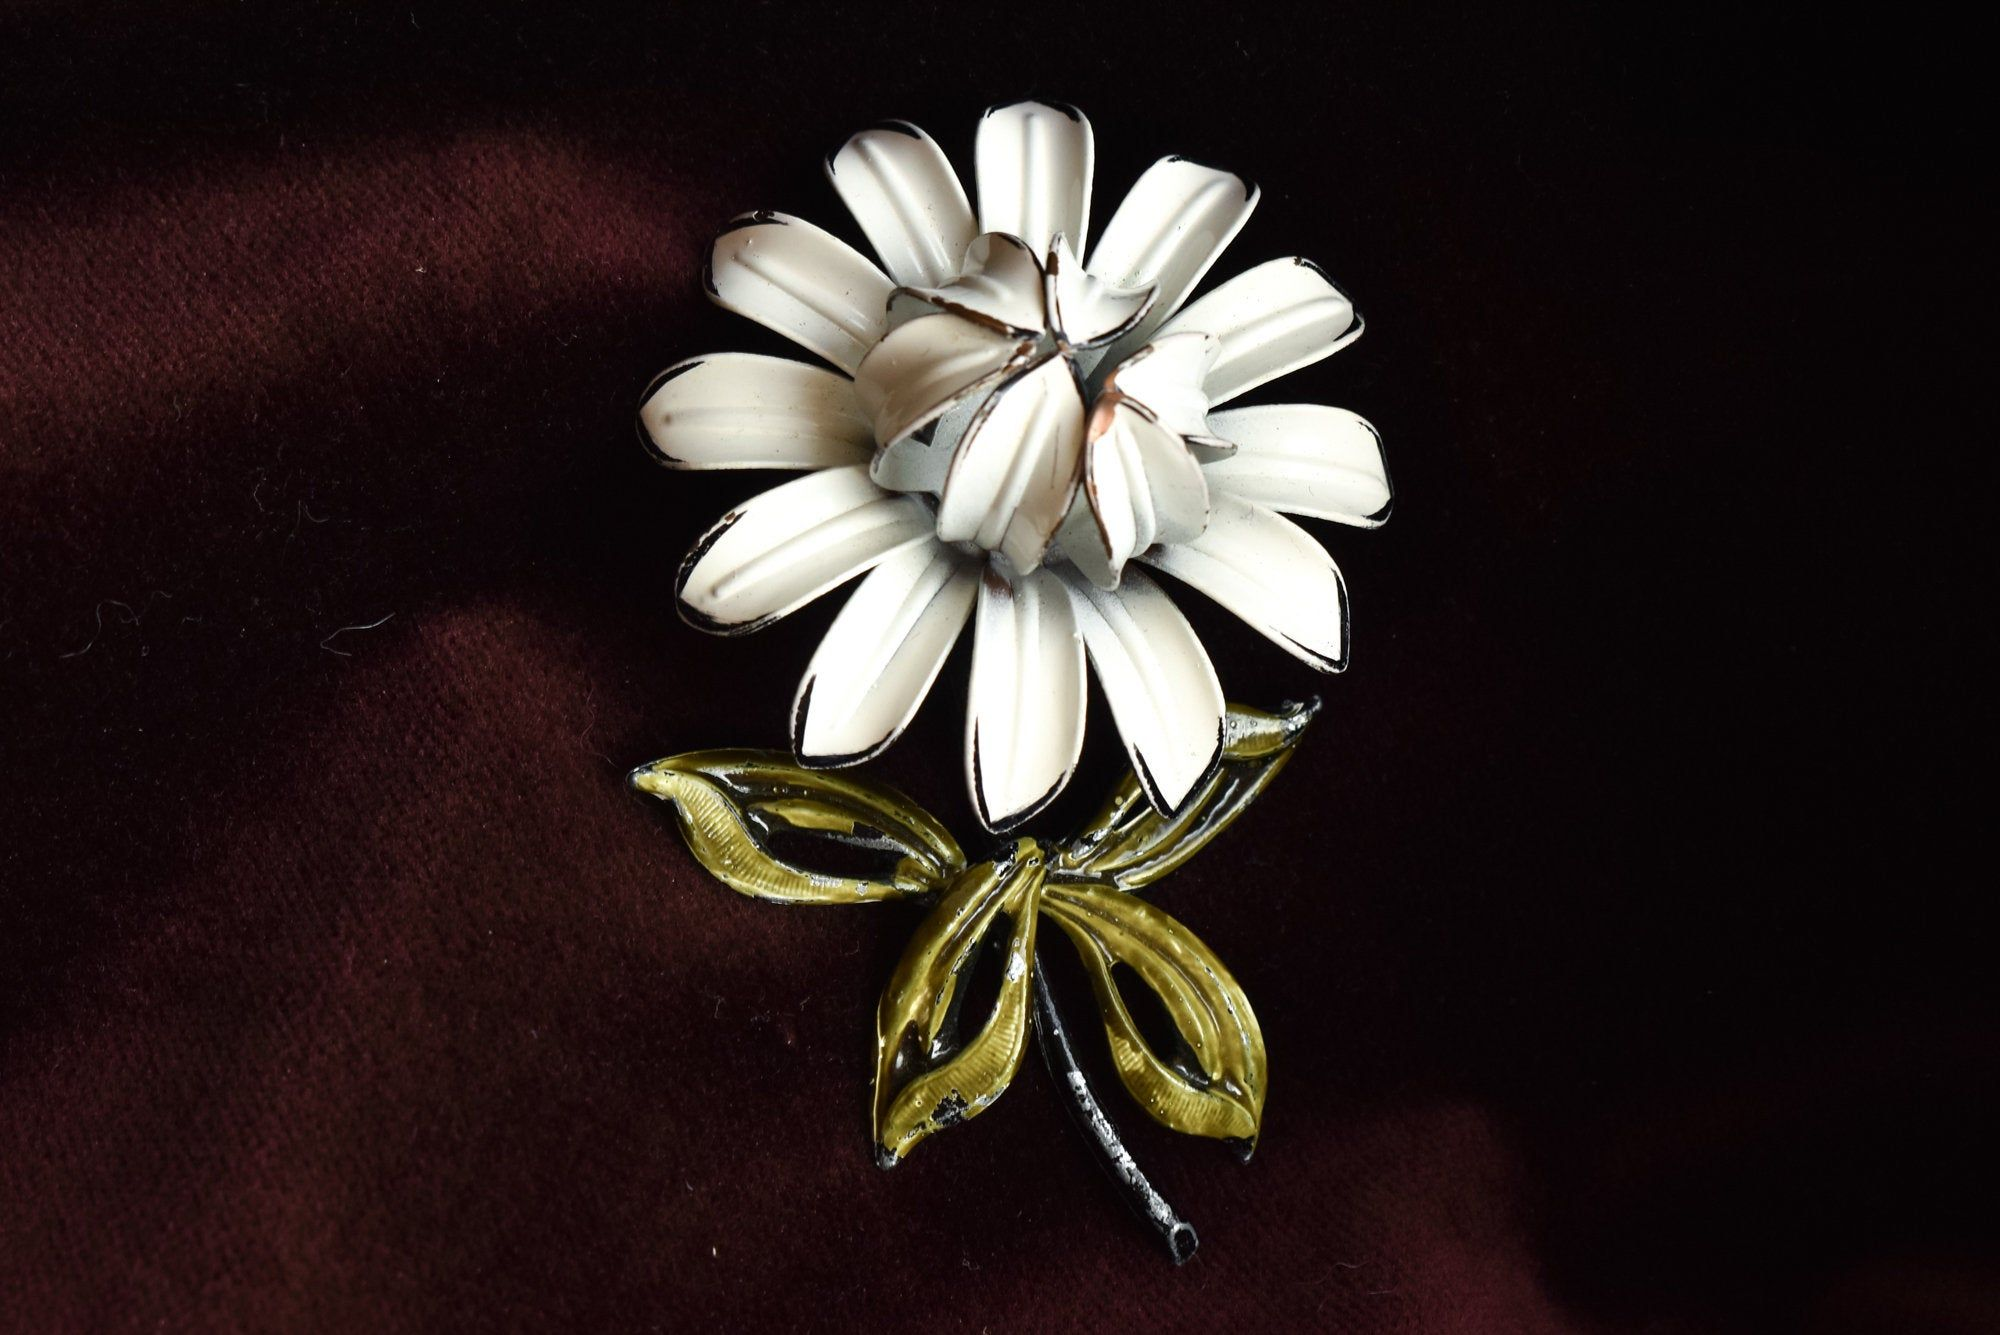 Enamel Metal Feminine White Pin Brooch. Vintage White Enameled Pin Brooch with Green Gold and White Stone